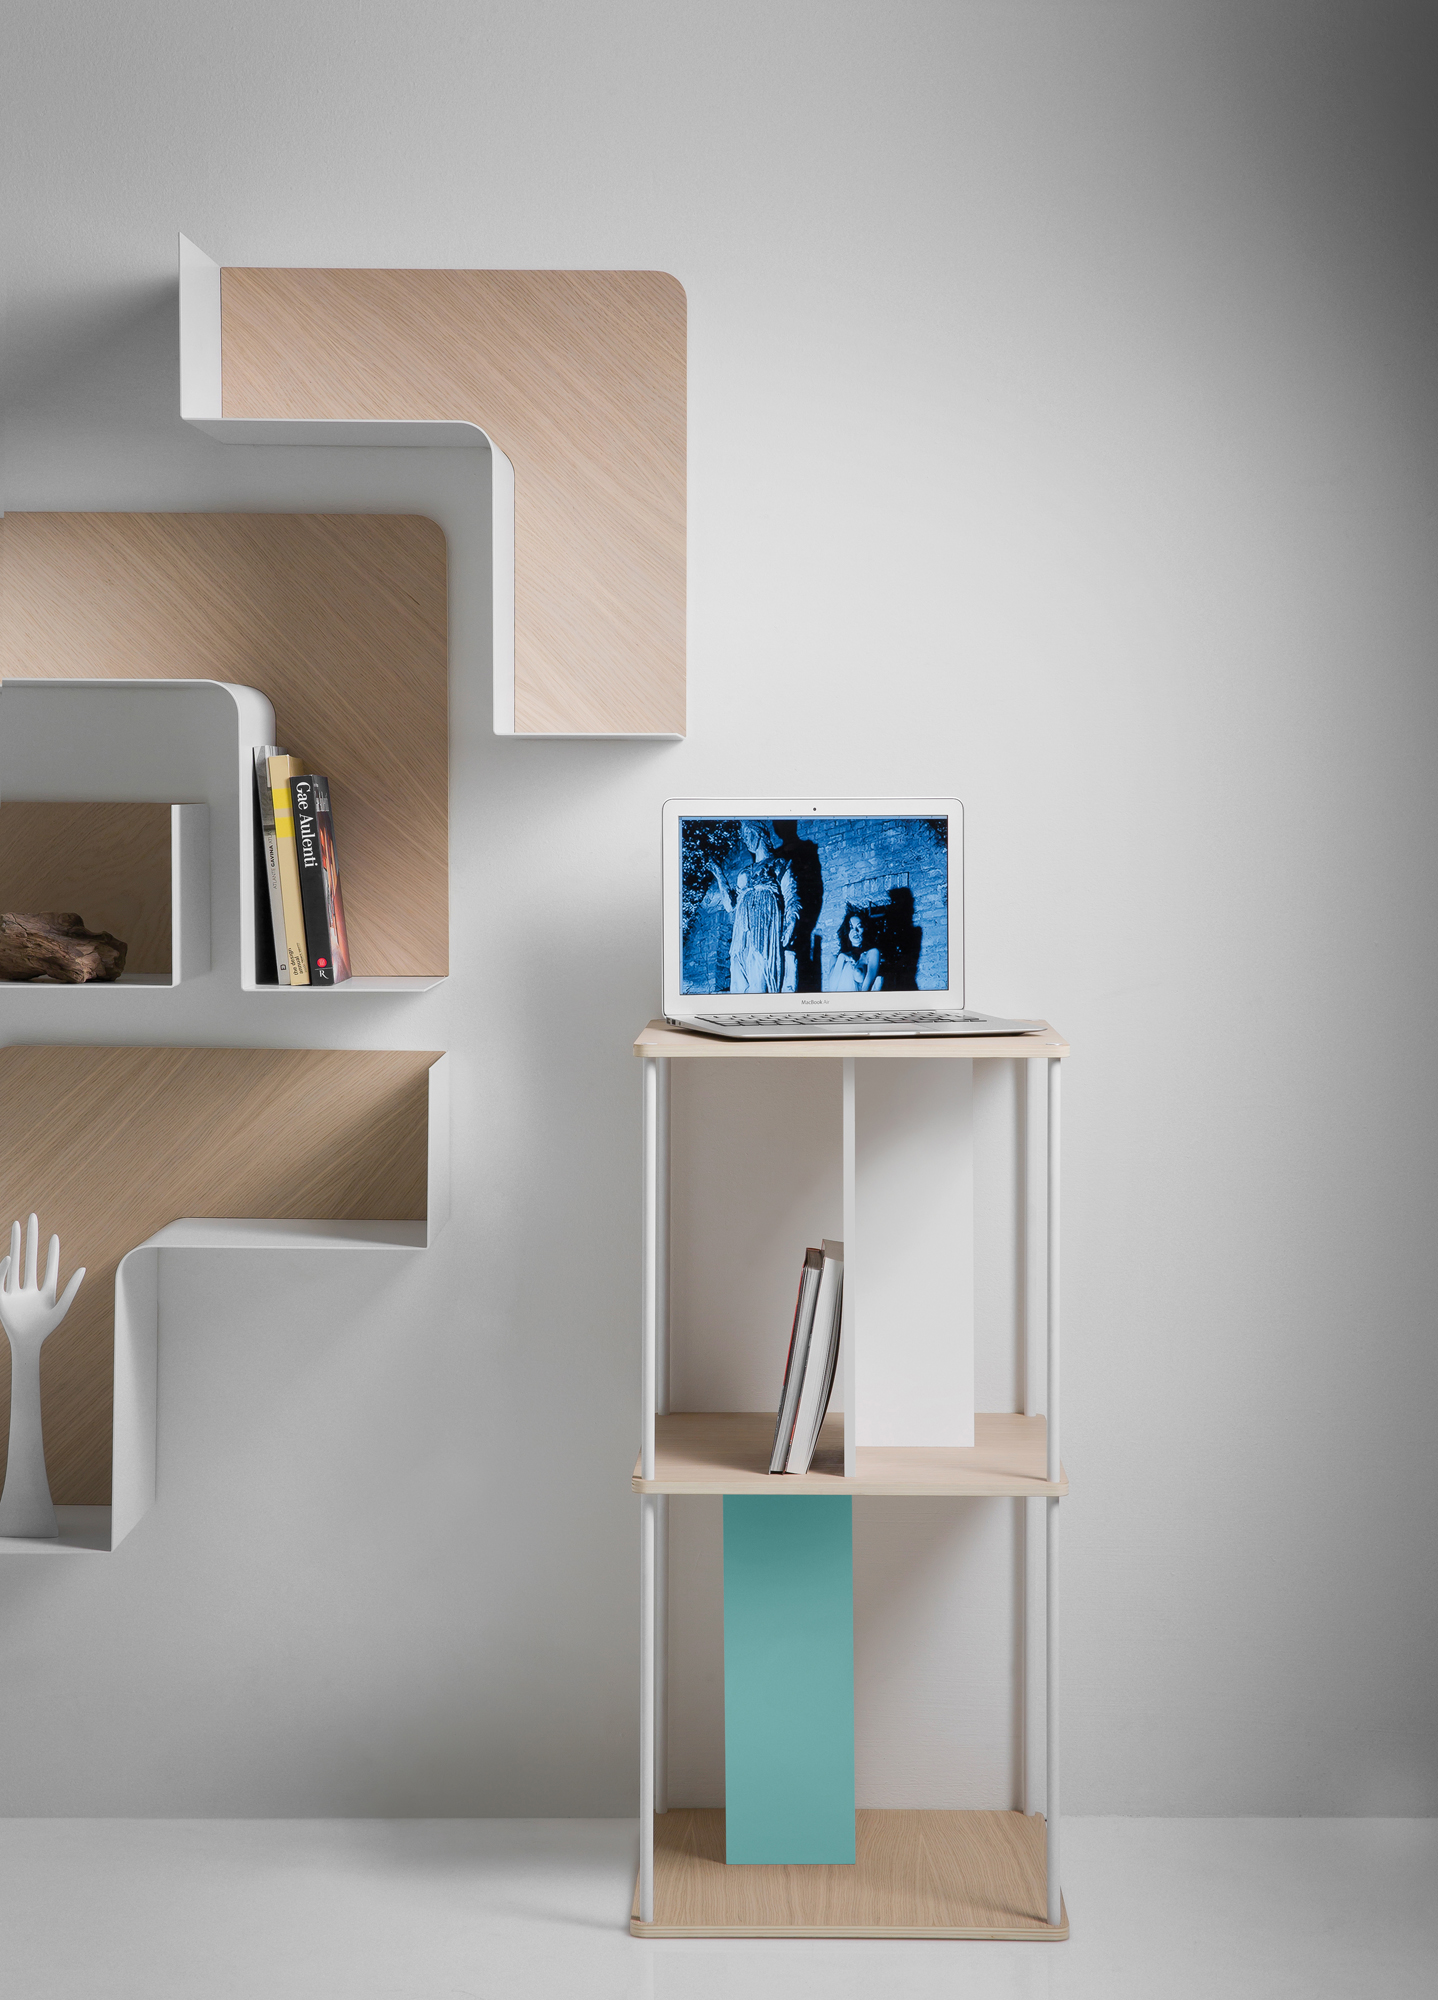 Wooden wall shelf fishbone by b line design favaretto partners - Bookshelf design on wall ...